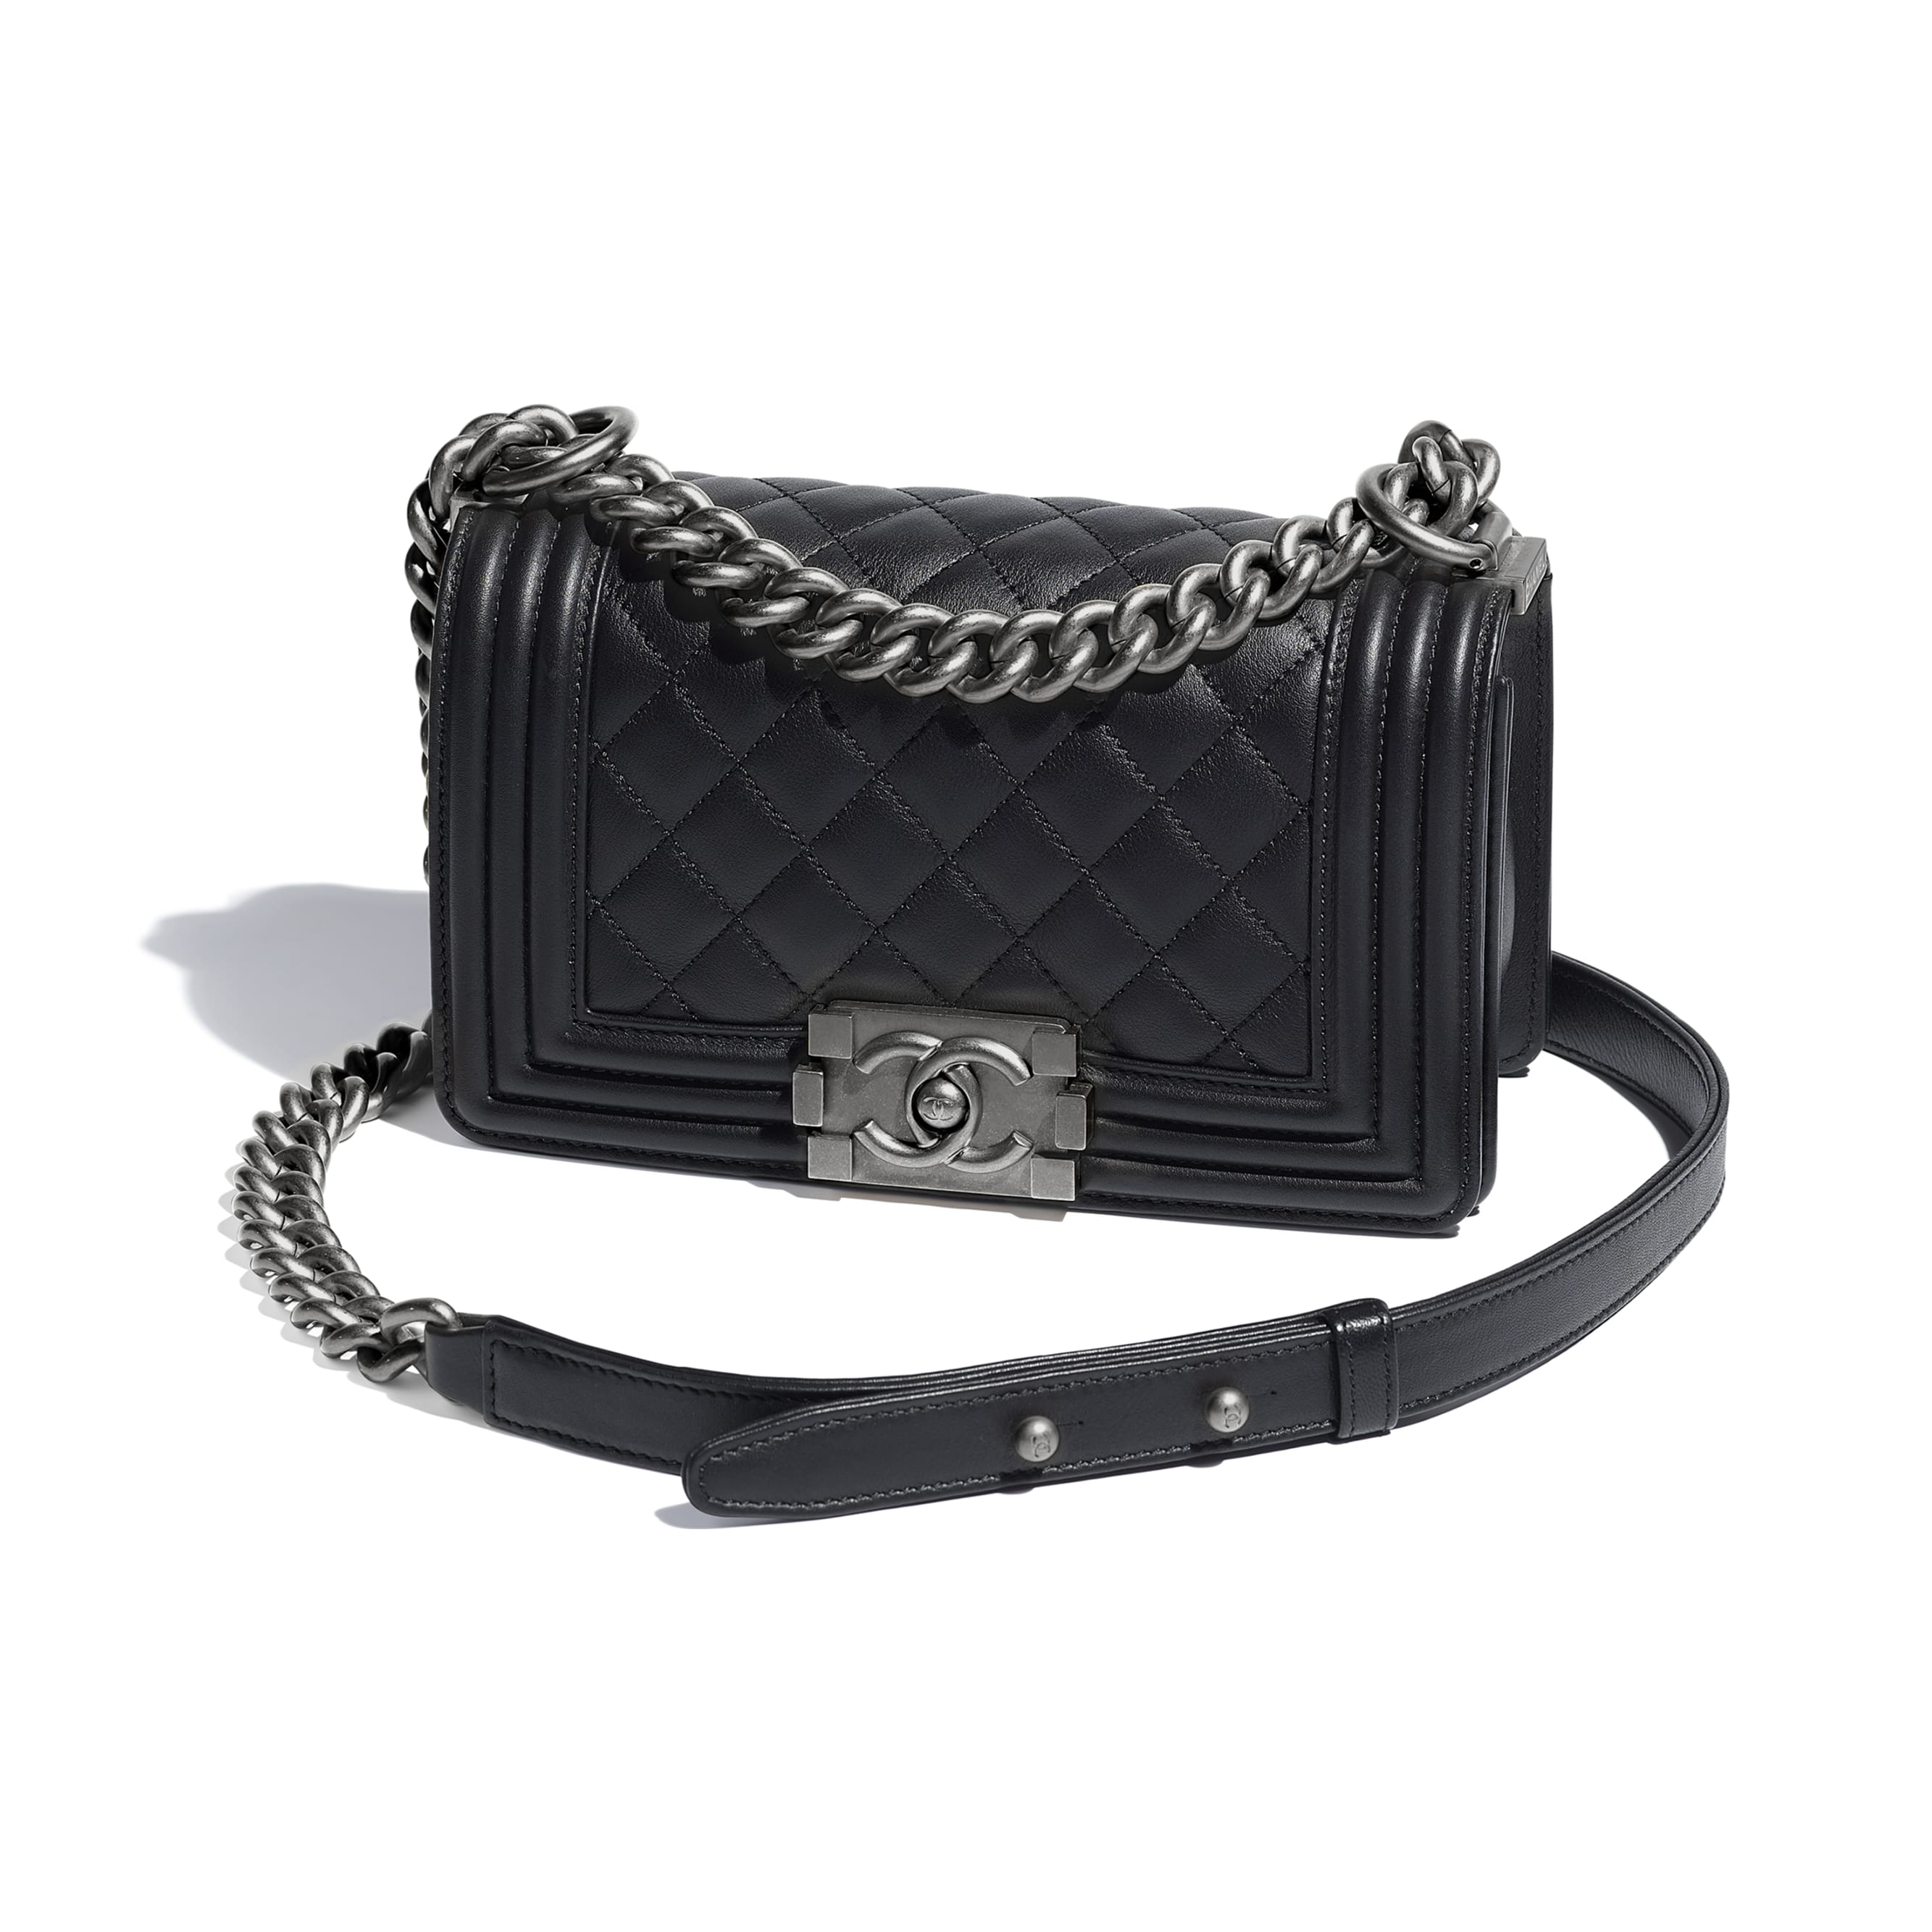 Small BOY CHANEL Handbag - Black - Calfskin & Ruthenium-Finish Metal - CHANEL - Other view - see standard sized version